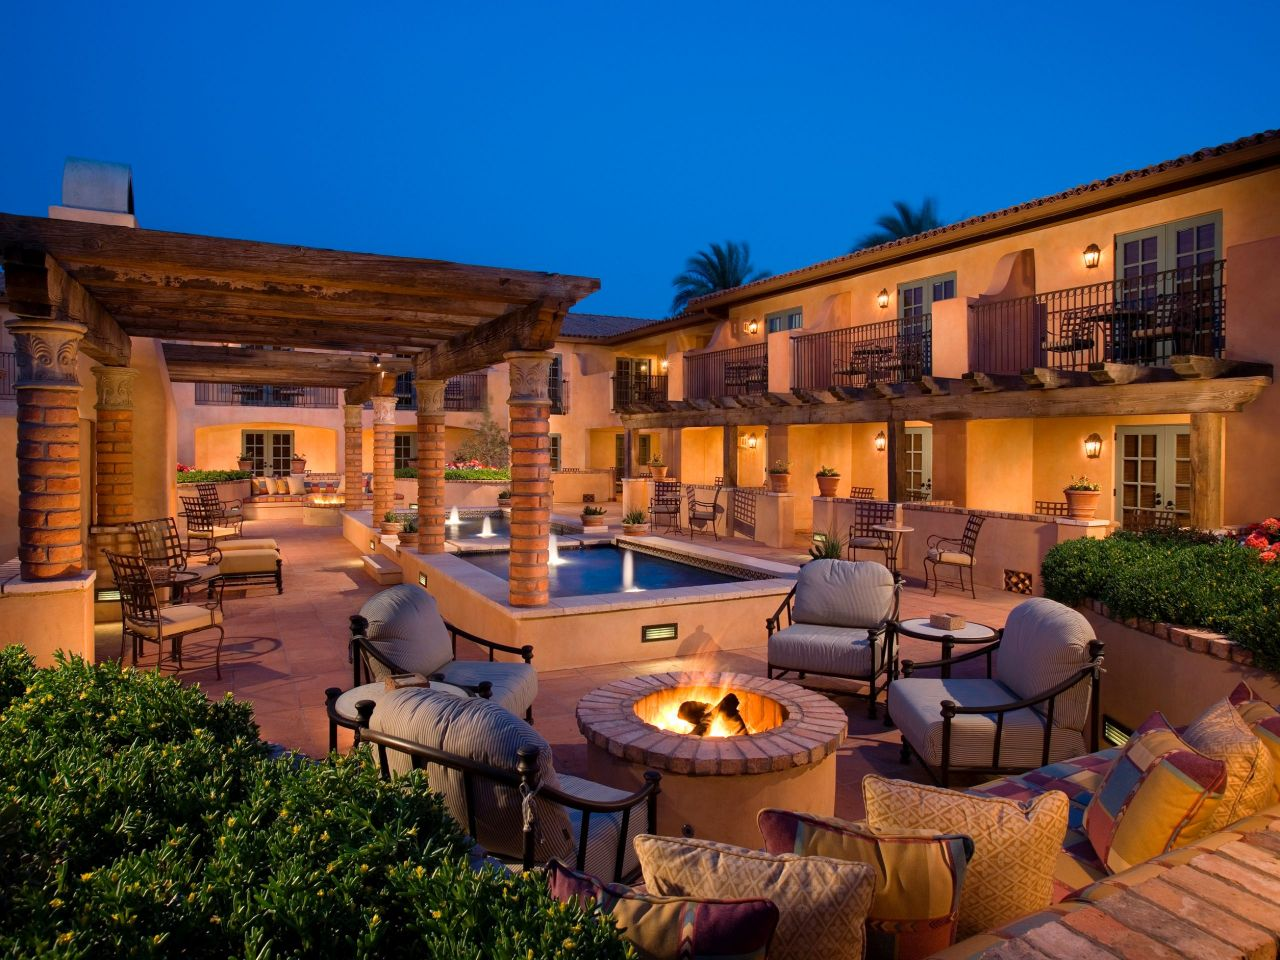 Luxury Phoenix Resort near Camelback Mountain Royal Palms